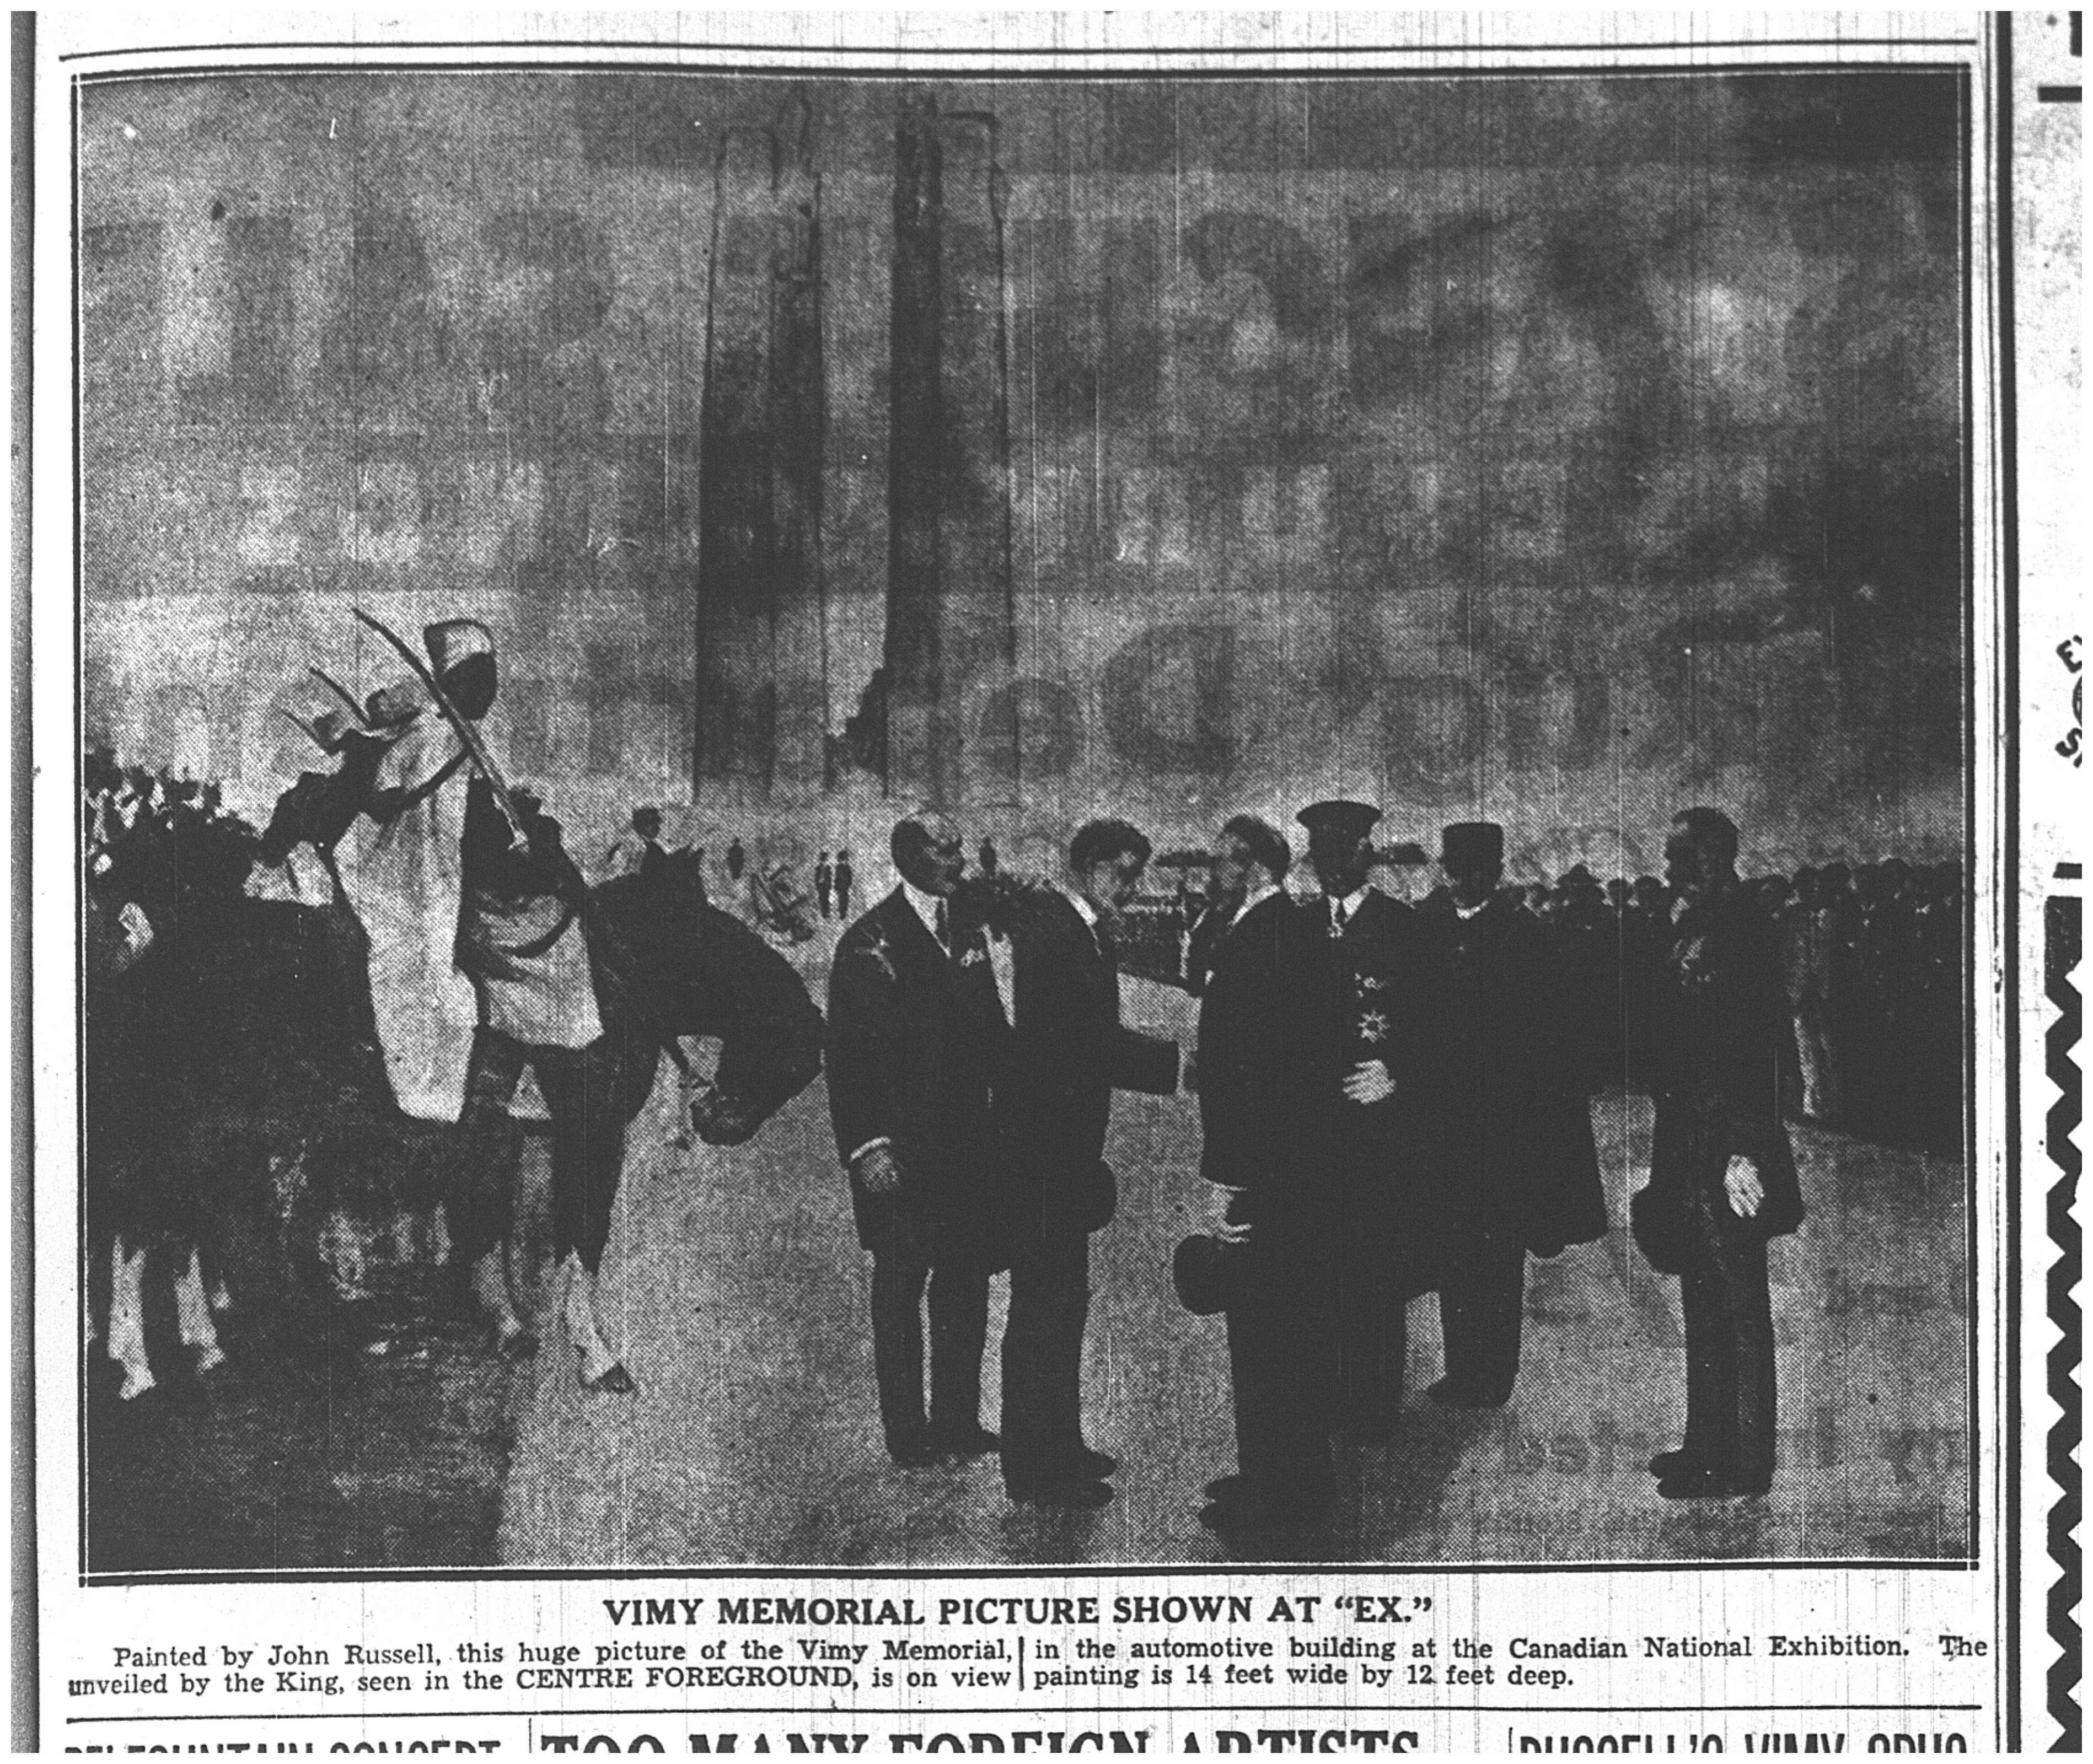 John Russell's work commemorating the Vimy Memorial.  The Toronto Star, August 29, 1936.